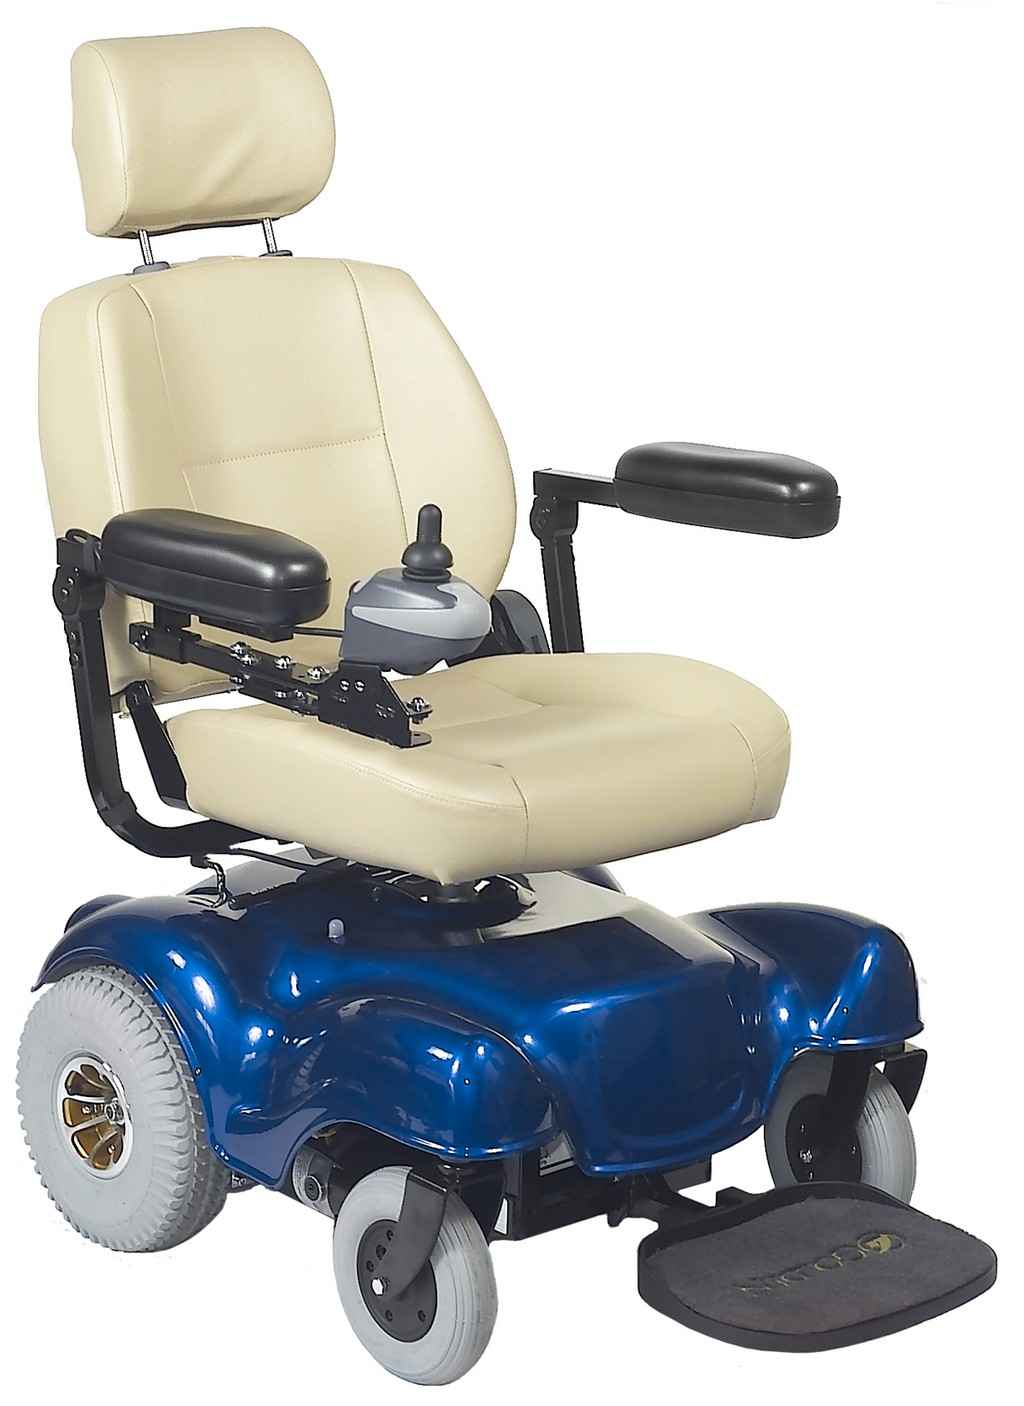 used electric wheelchair parts used, invacare electric wheelchair, rent power wheelchairs, power wheel chair chargers